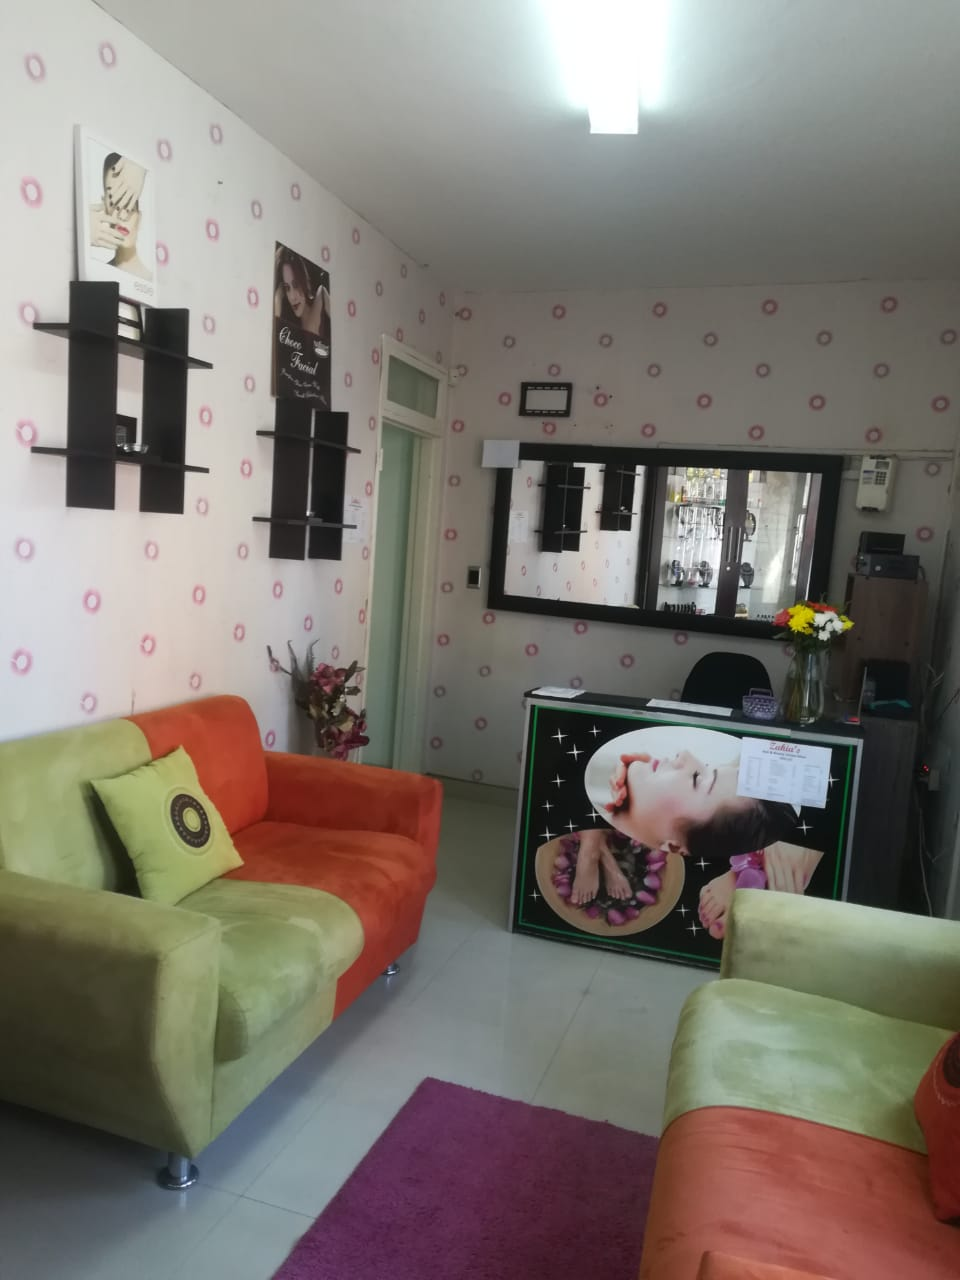 UPMARKET HAIR AND BEAUTY SALON FOR SALE IN OVERPORT